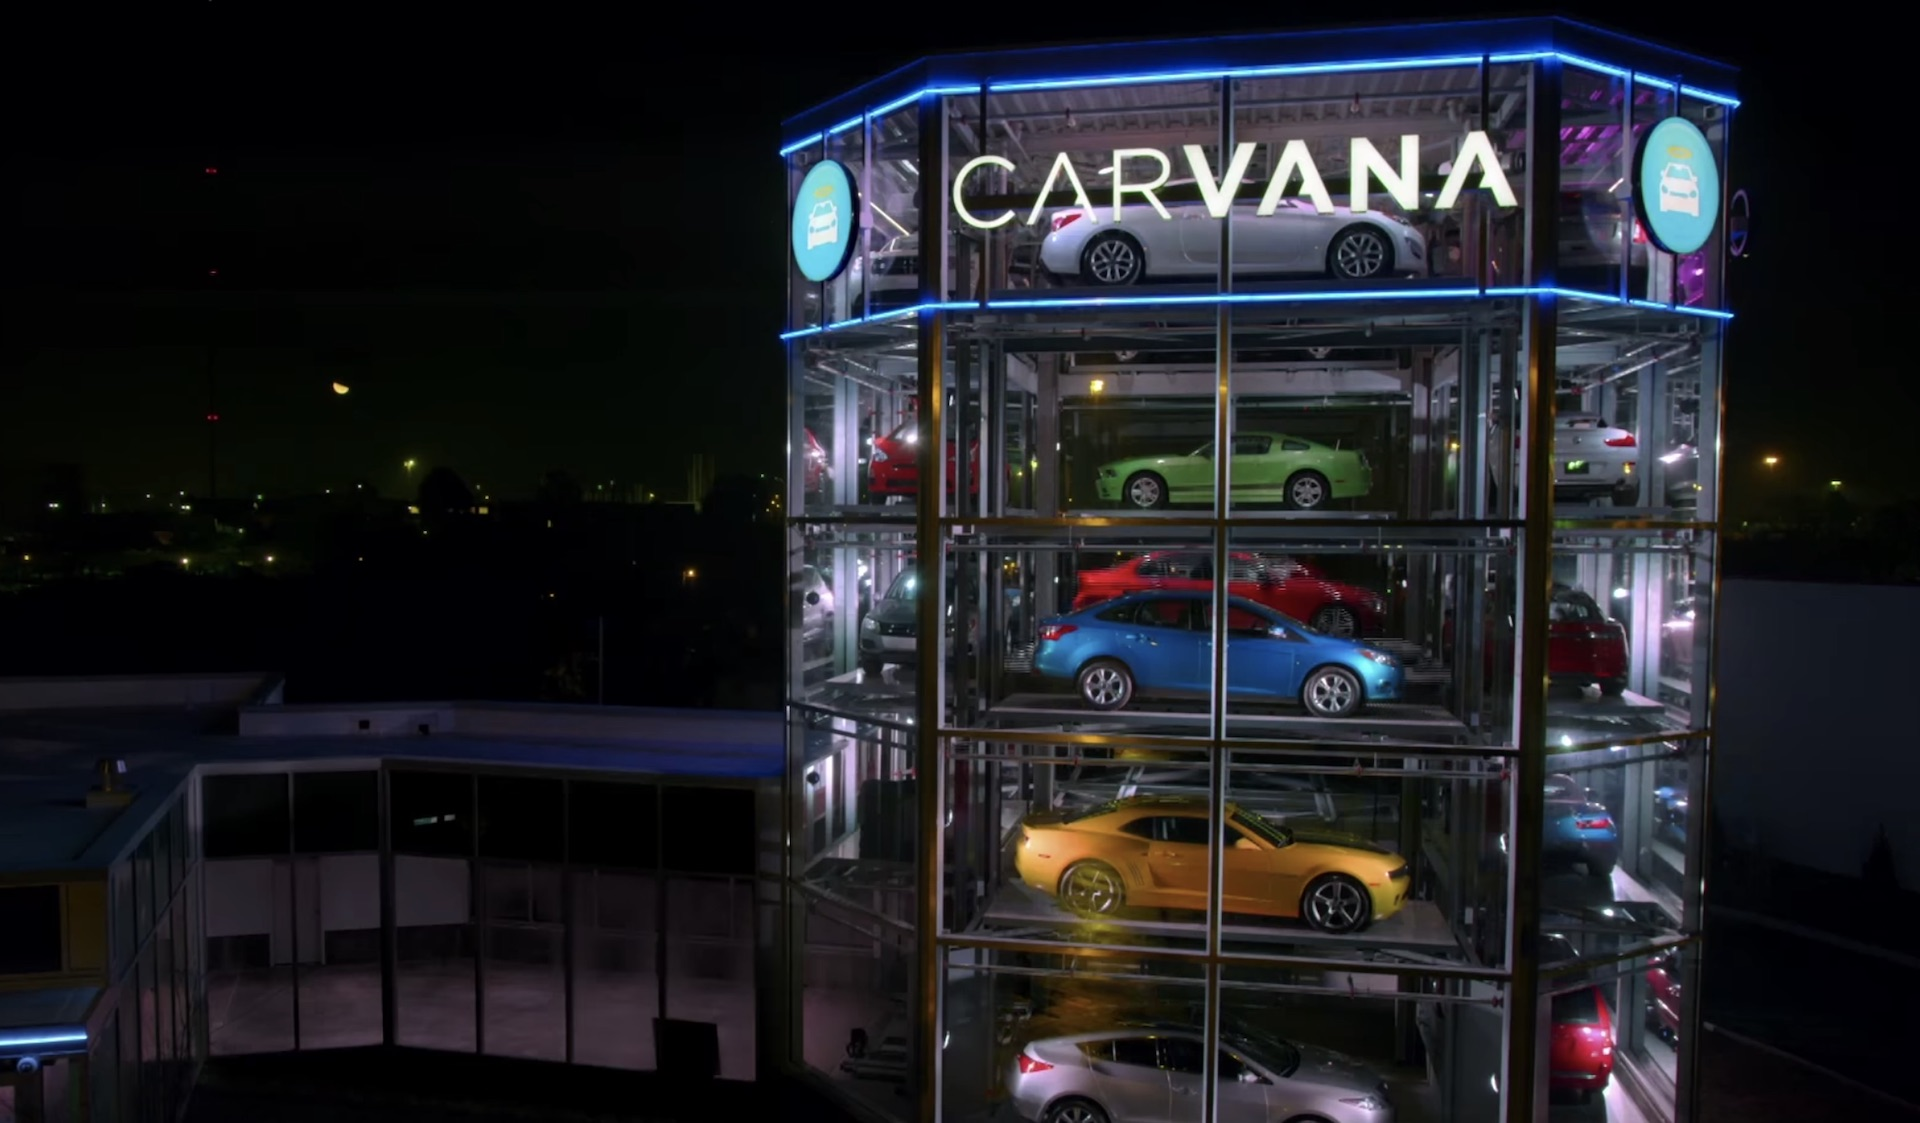 Insert Coin Carvana Continues To Open Car Vending